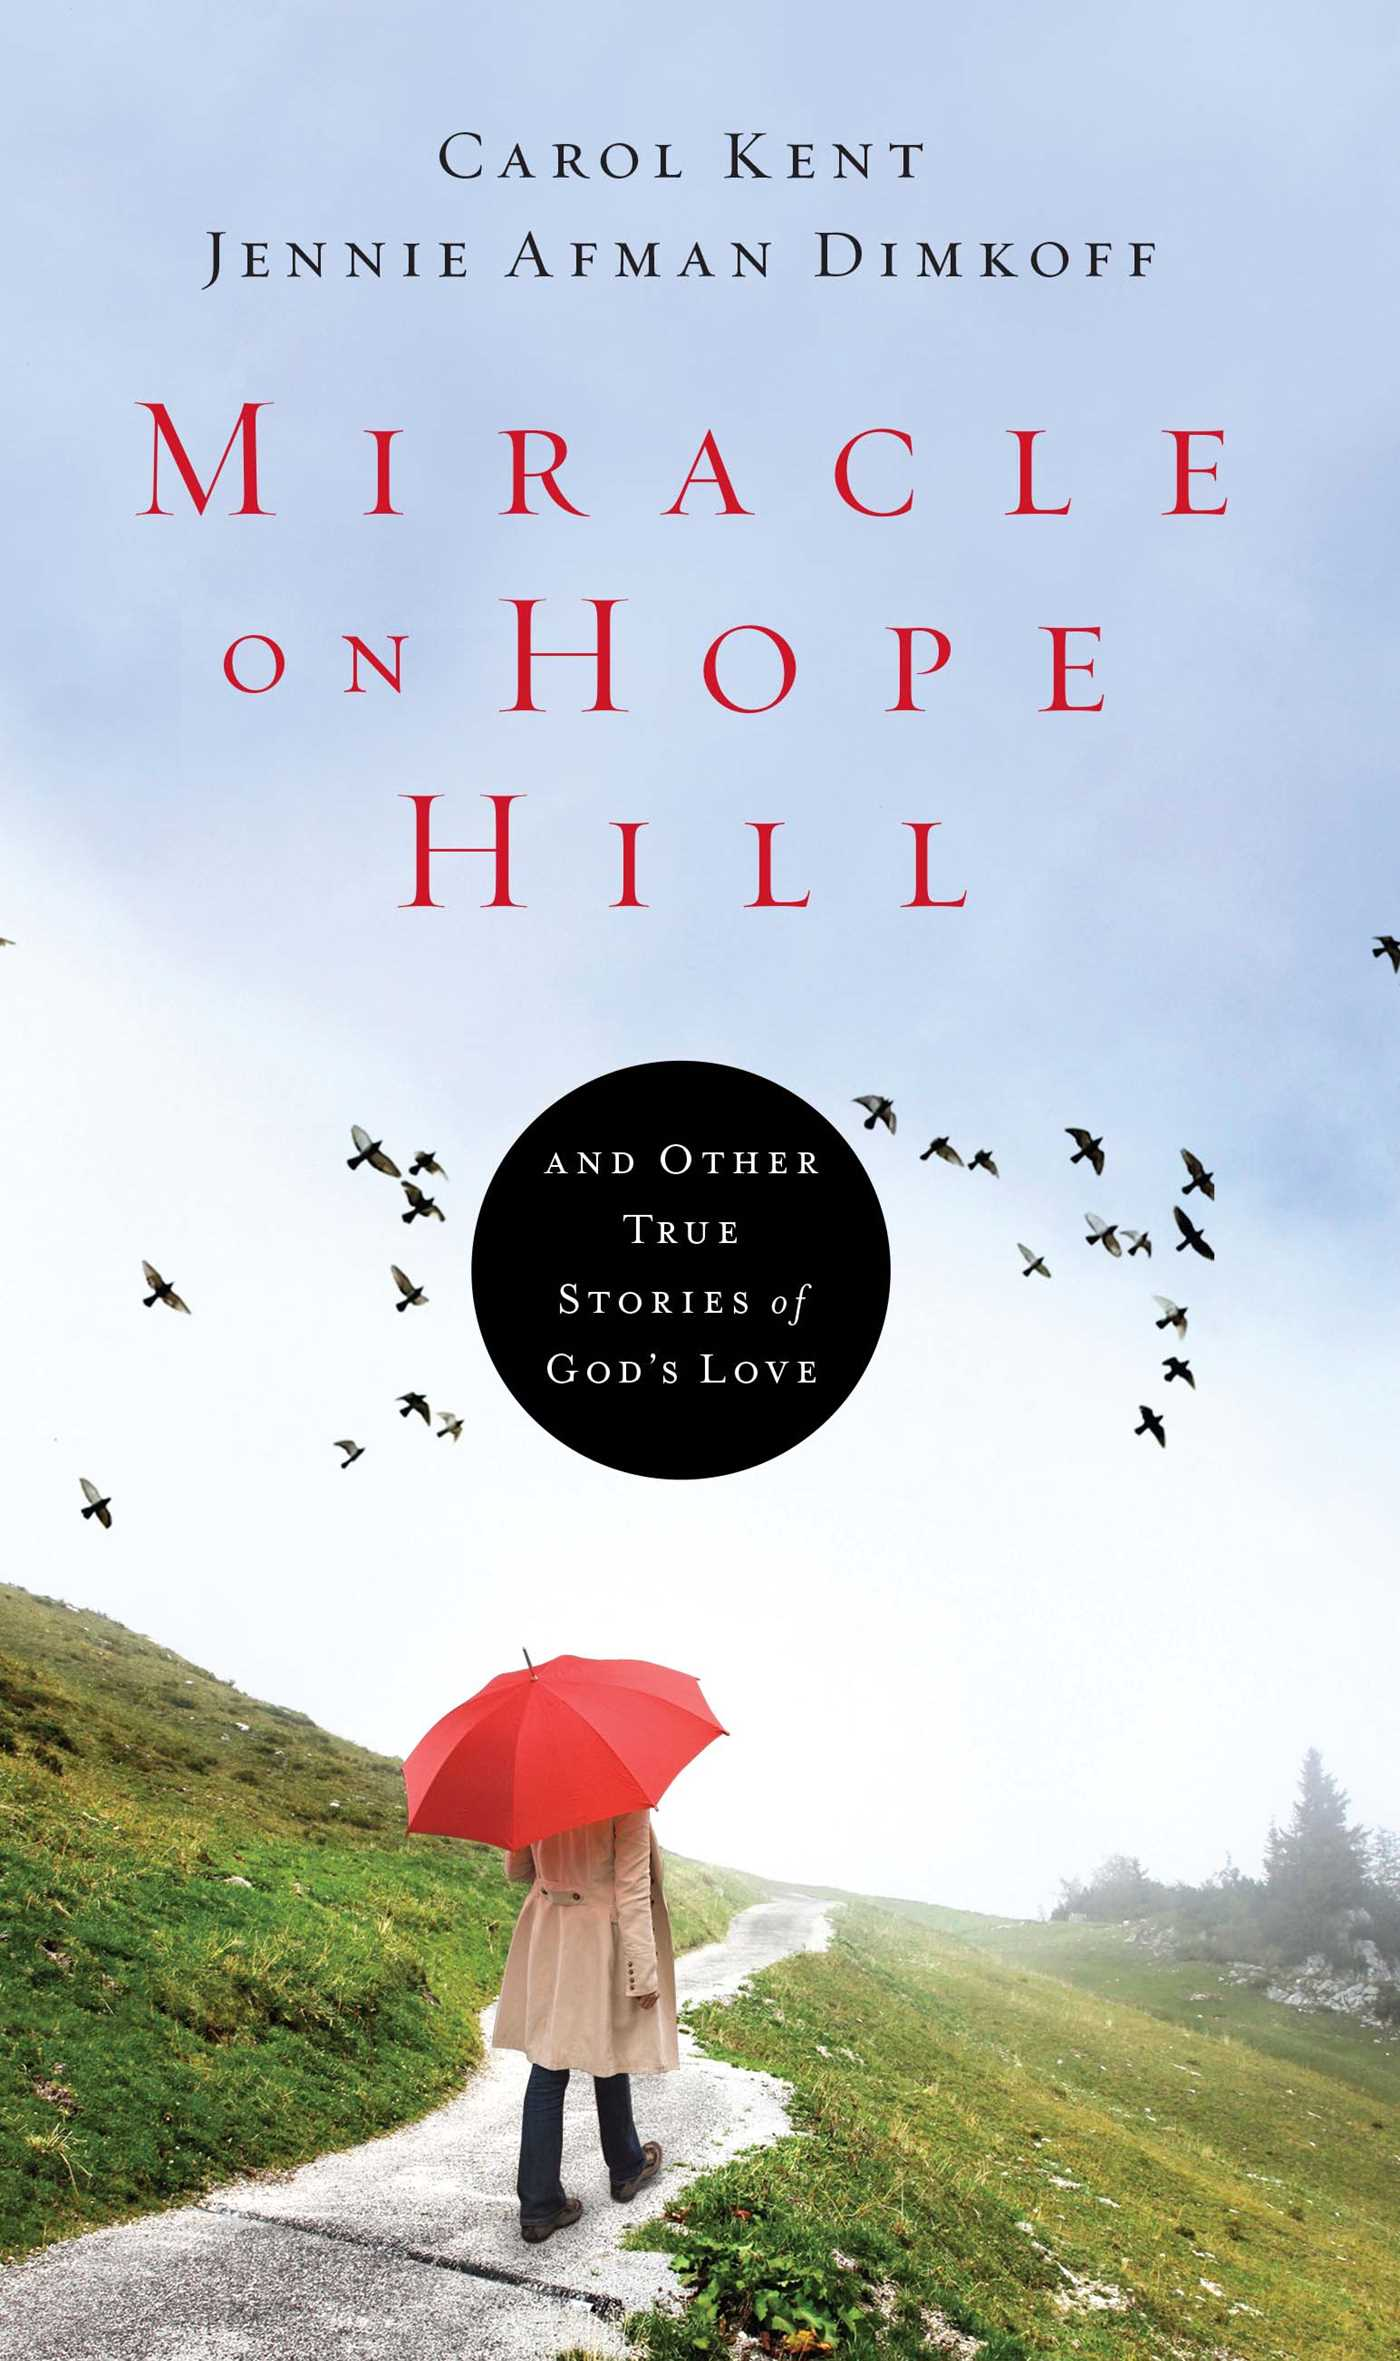 Miracle-on-hope-hill-9781439195758_hr